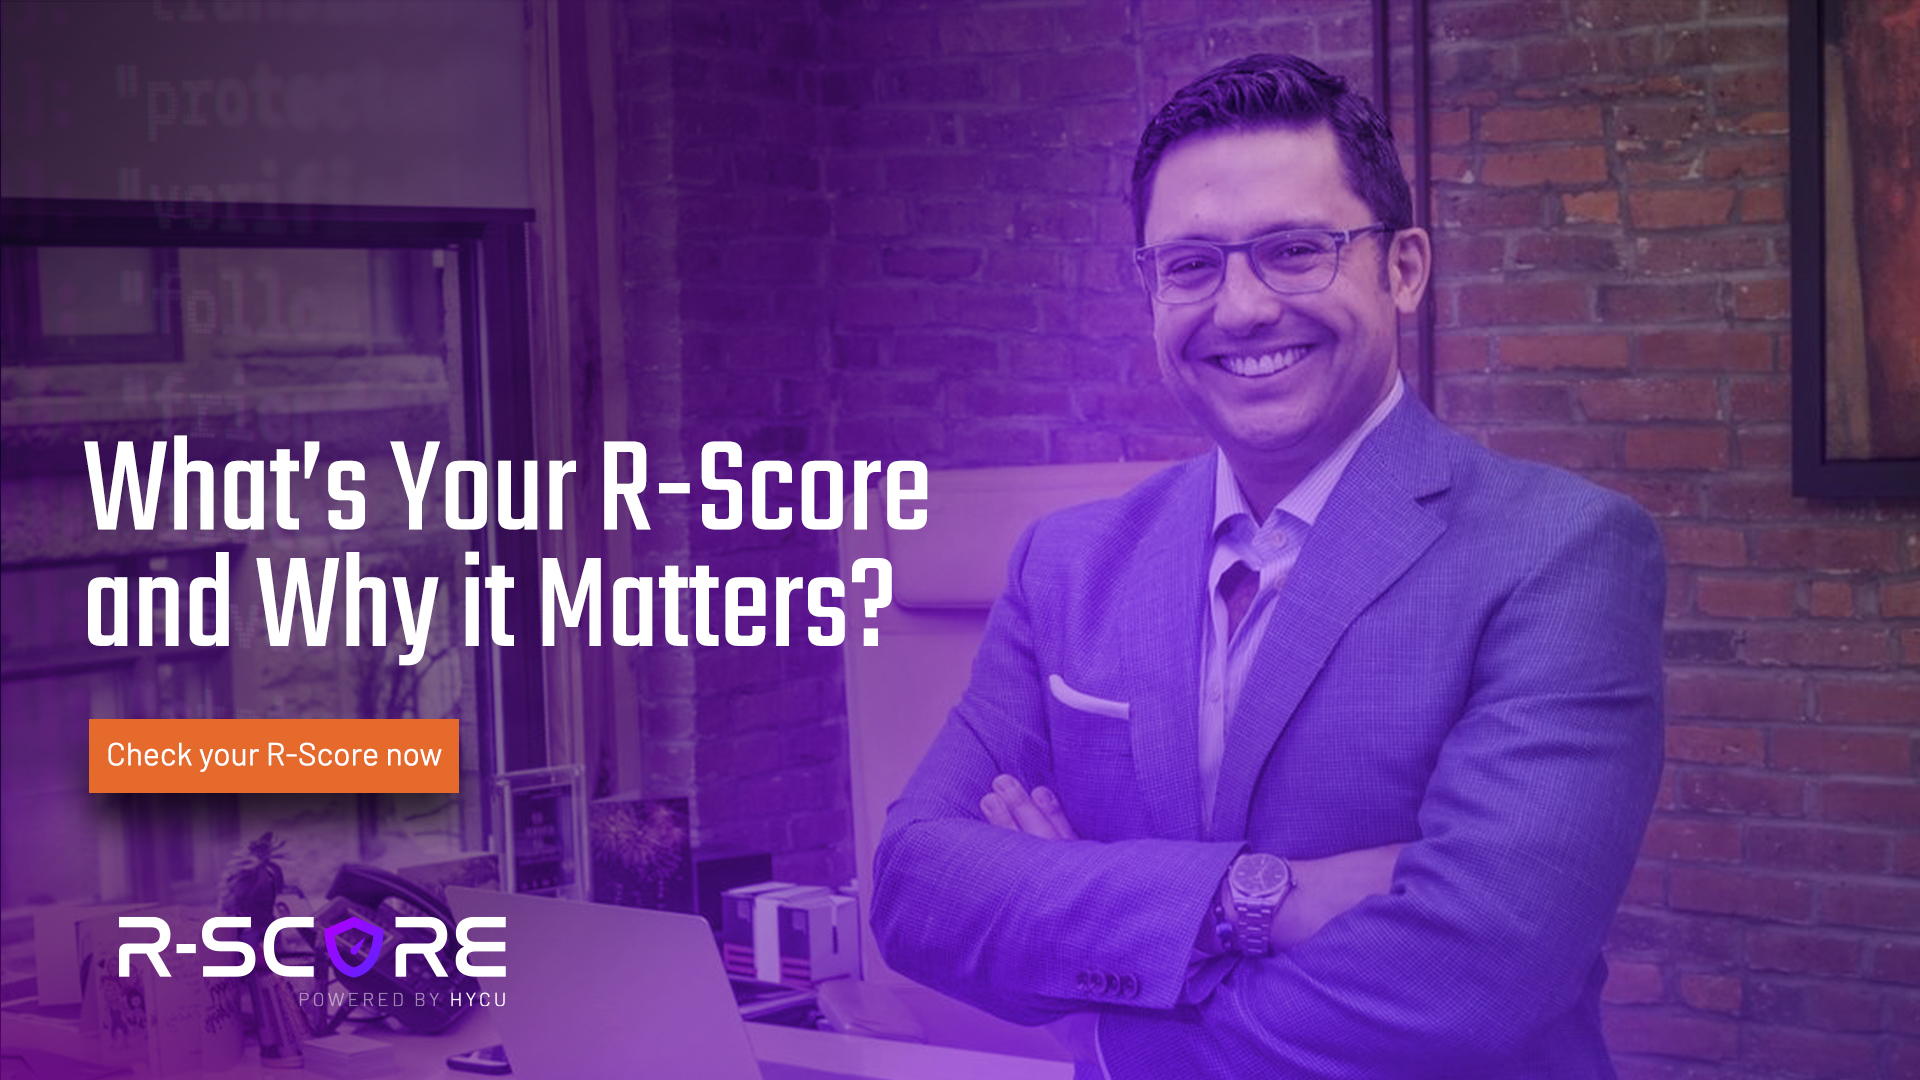 What's Your R-Score and Why It Matters